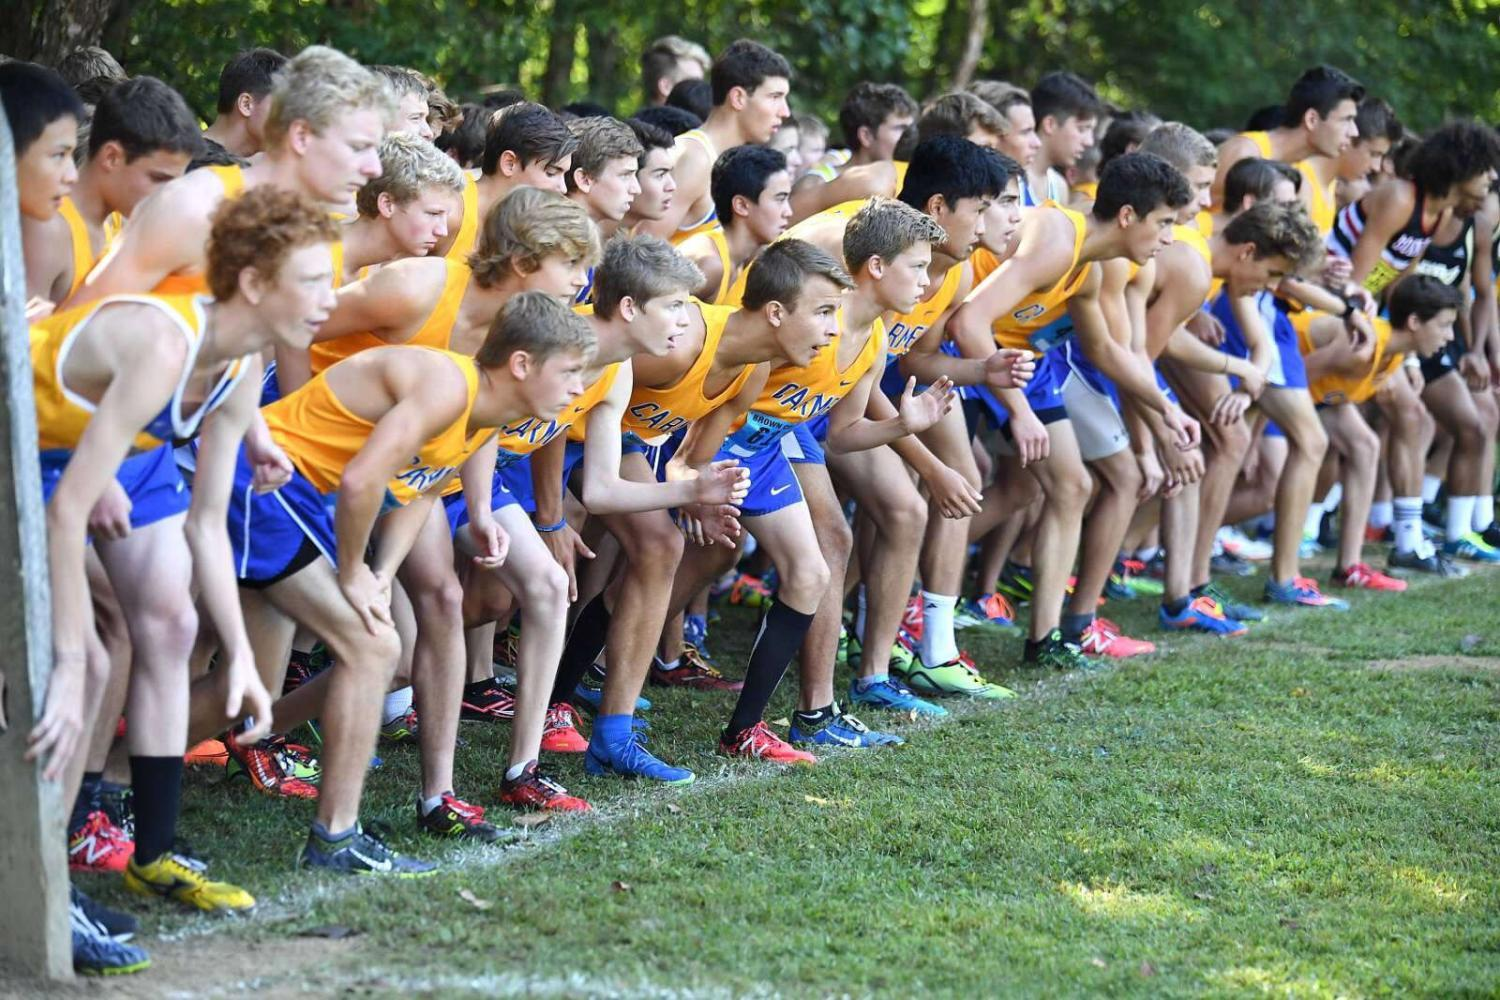 Sean Reimer is running in the Trinity Invitational with his fellow teammates. The Trinity Invitational was on September 16 and CHS won 1st place.